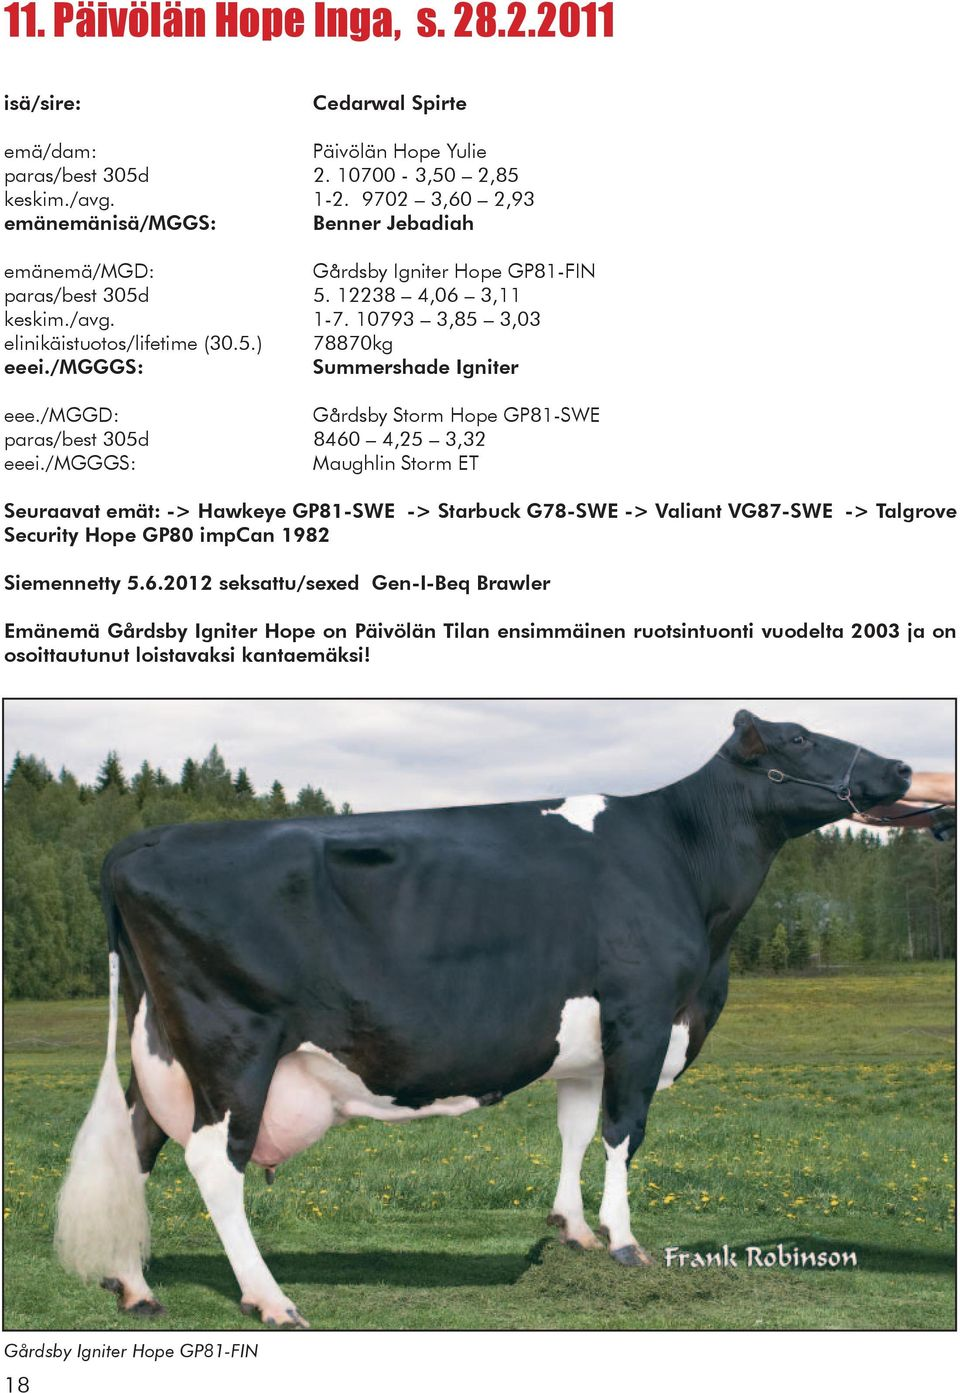 /mggd: Gårdsby Storm Hope GP81-SWE paras/best 305d 8460 4,25 3,32 Maughlin Storm ET Seuraavat emät: -> Hawkeye GP81-SWE -> Starbuck G78-SWE -> Valiant VG87-SWE -> Talgrove Security Hope